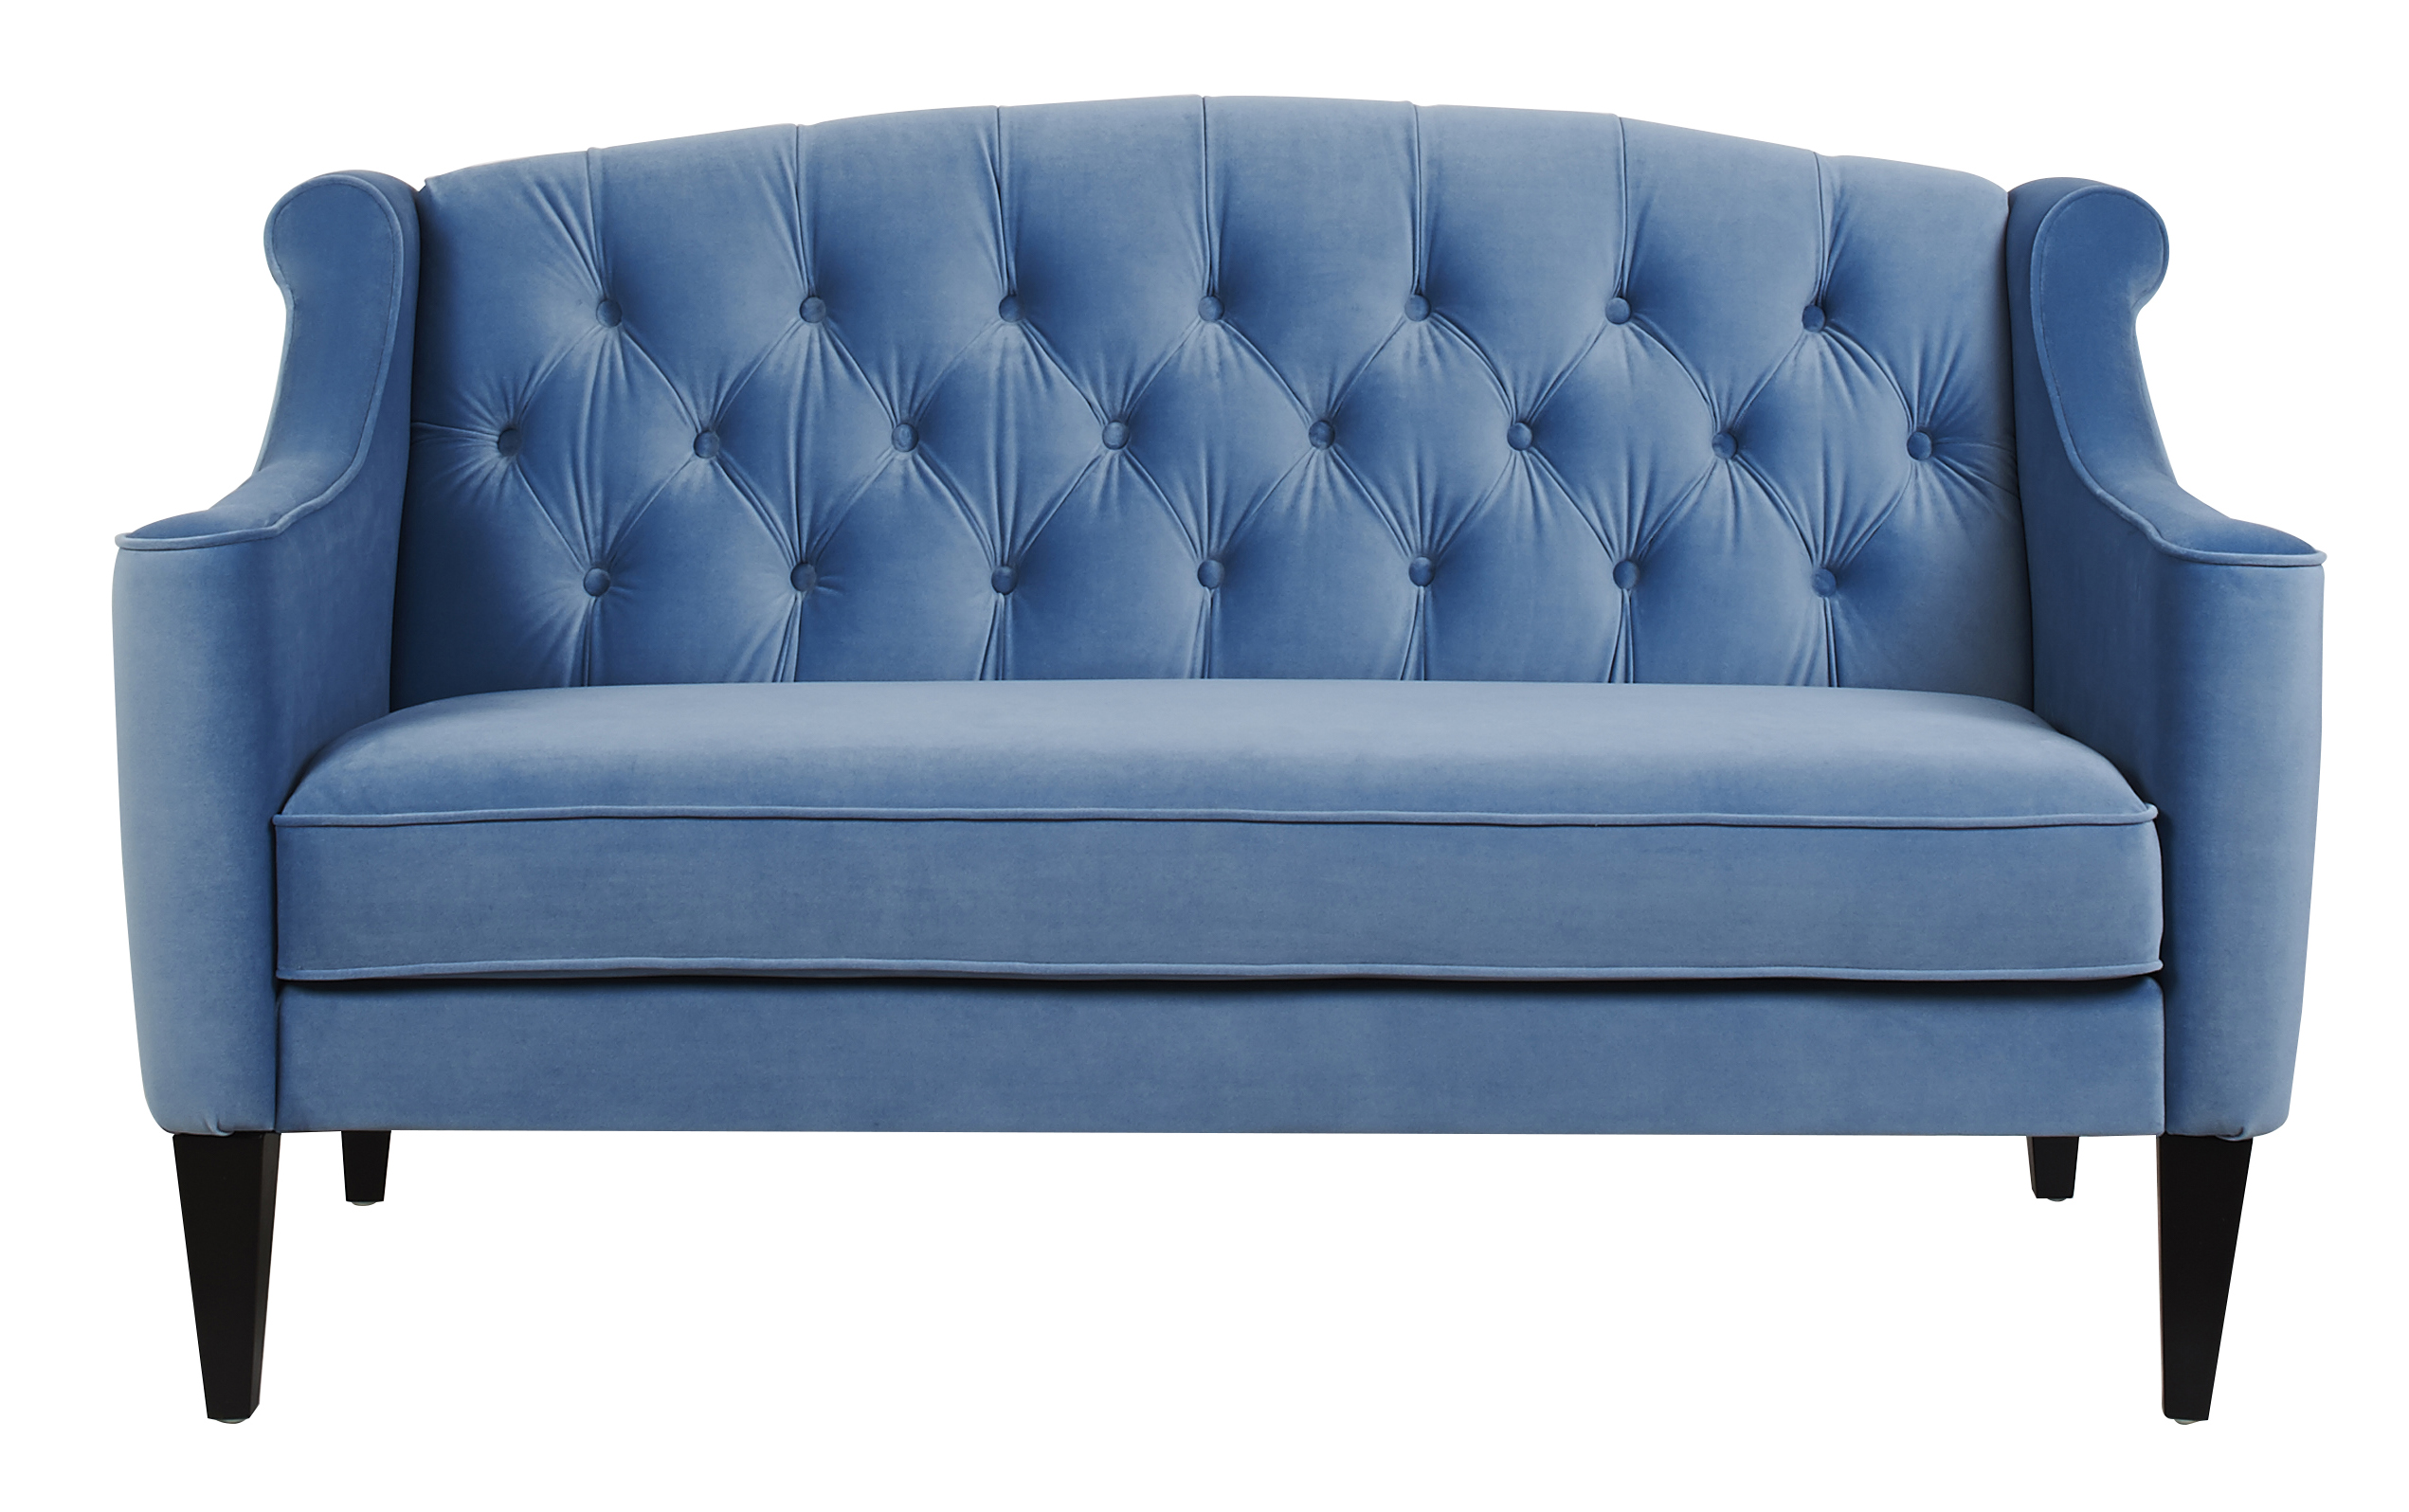 Chesterfield Sofa Velvet Fabric Fabric Wooden Chesterfield Velvet Sofa Blue